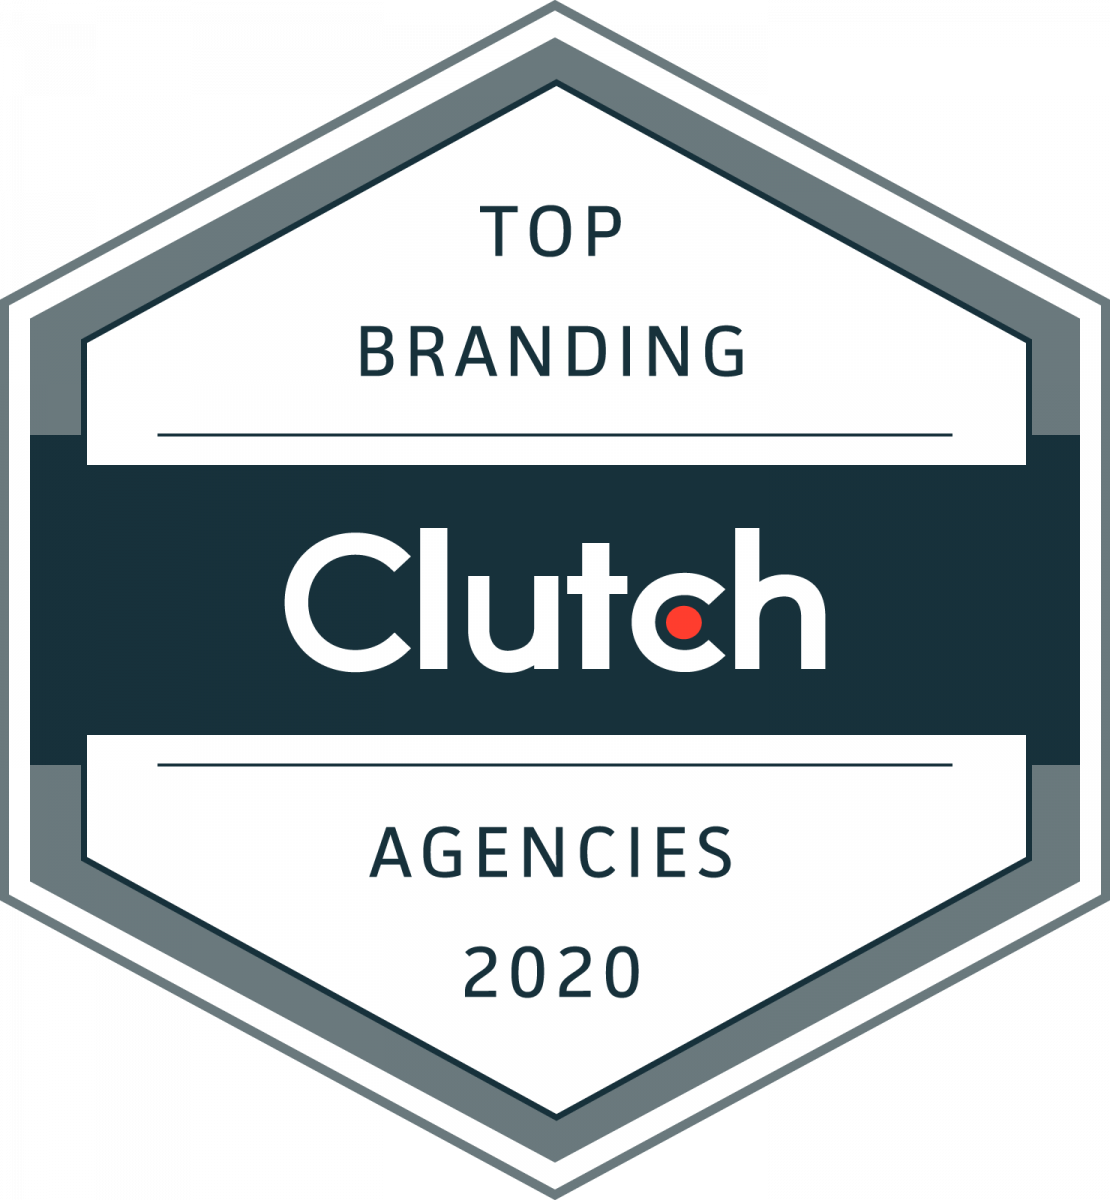 Top Branding Agencies Clutch 2020